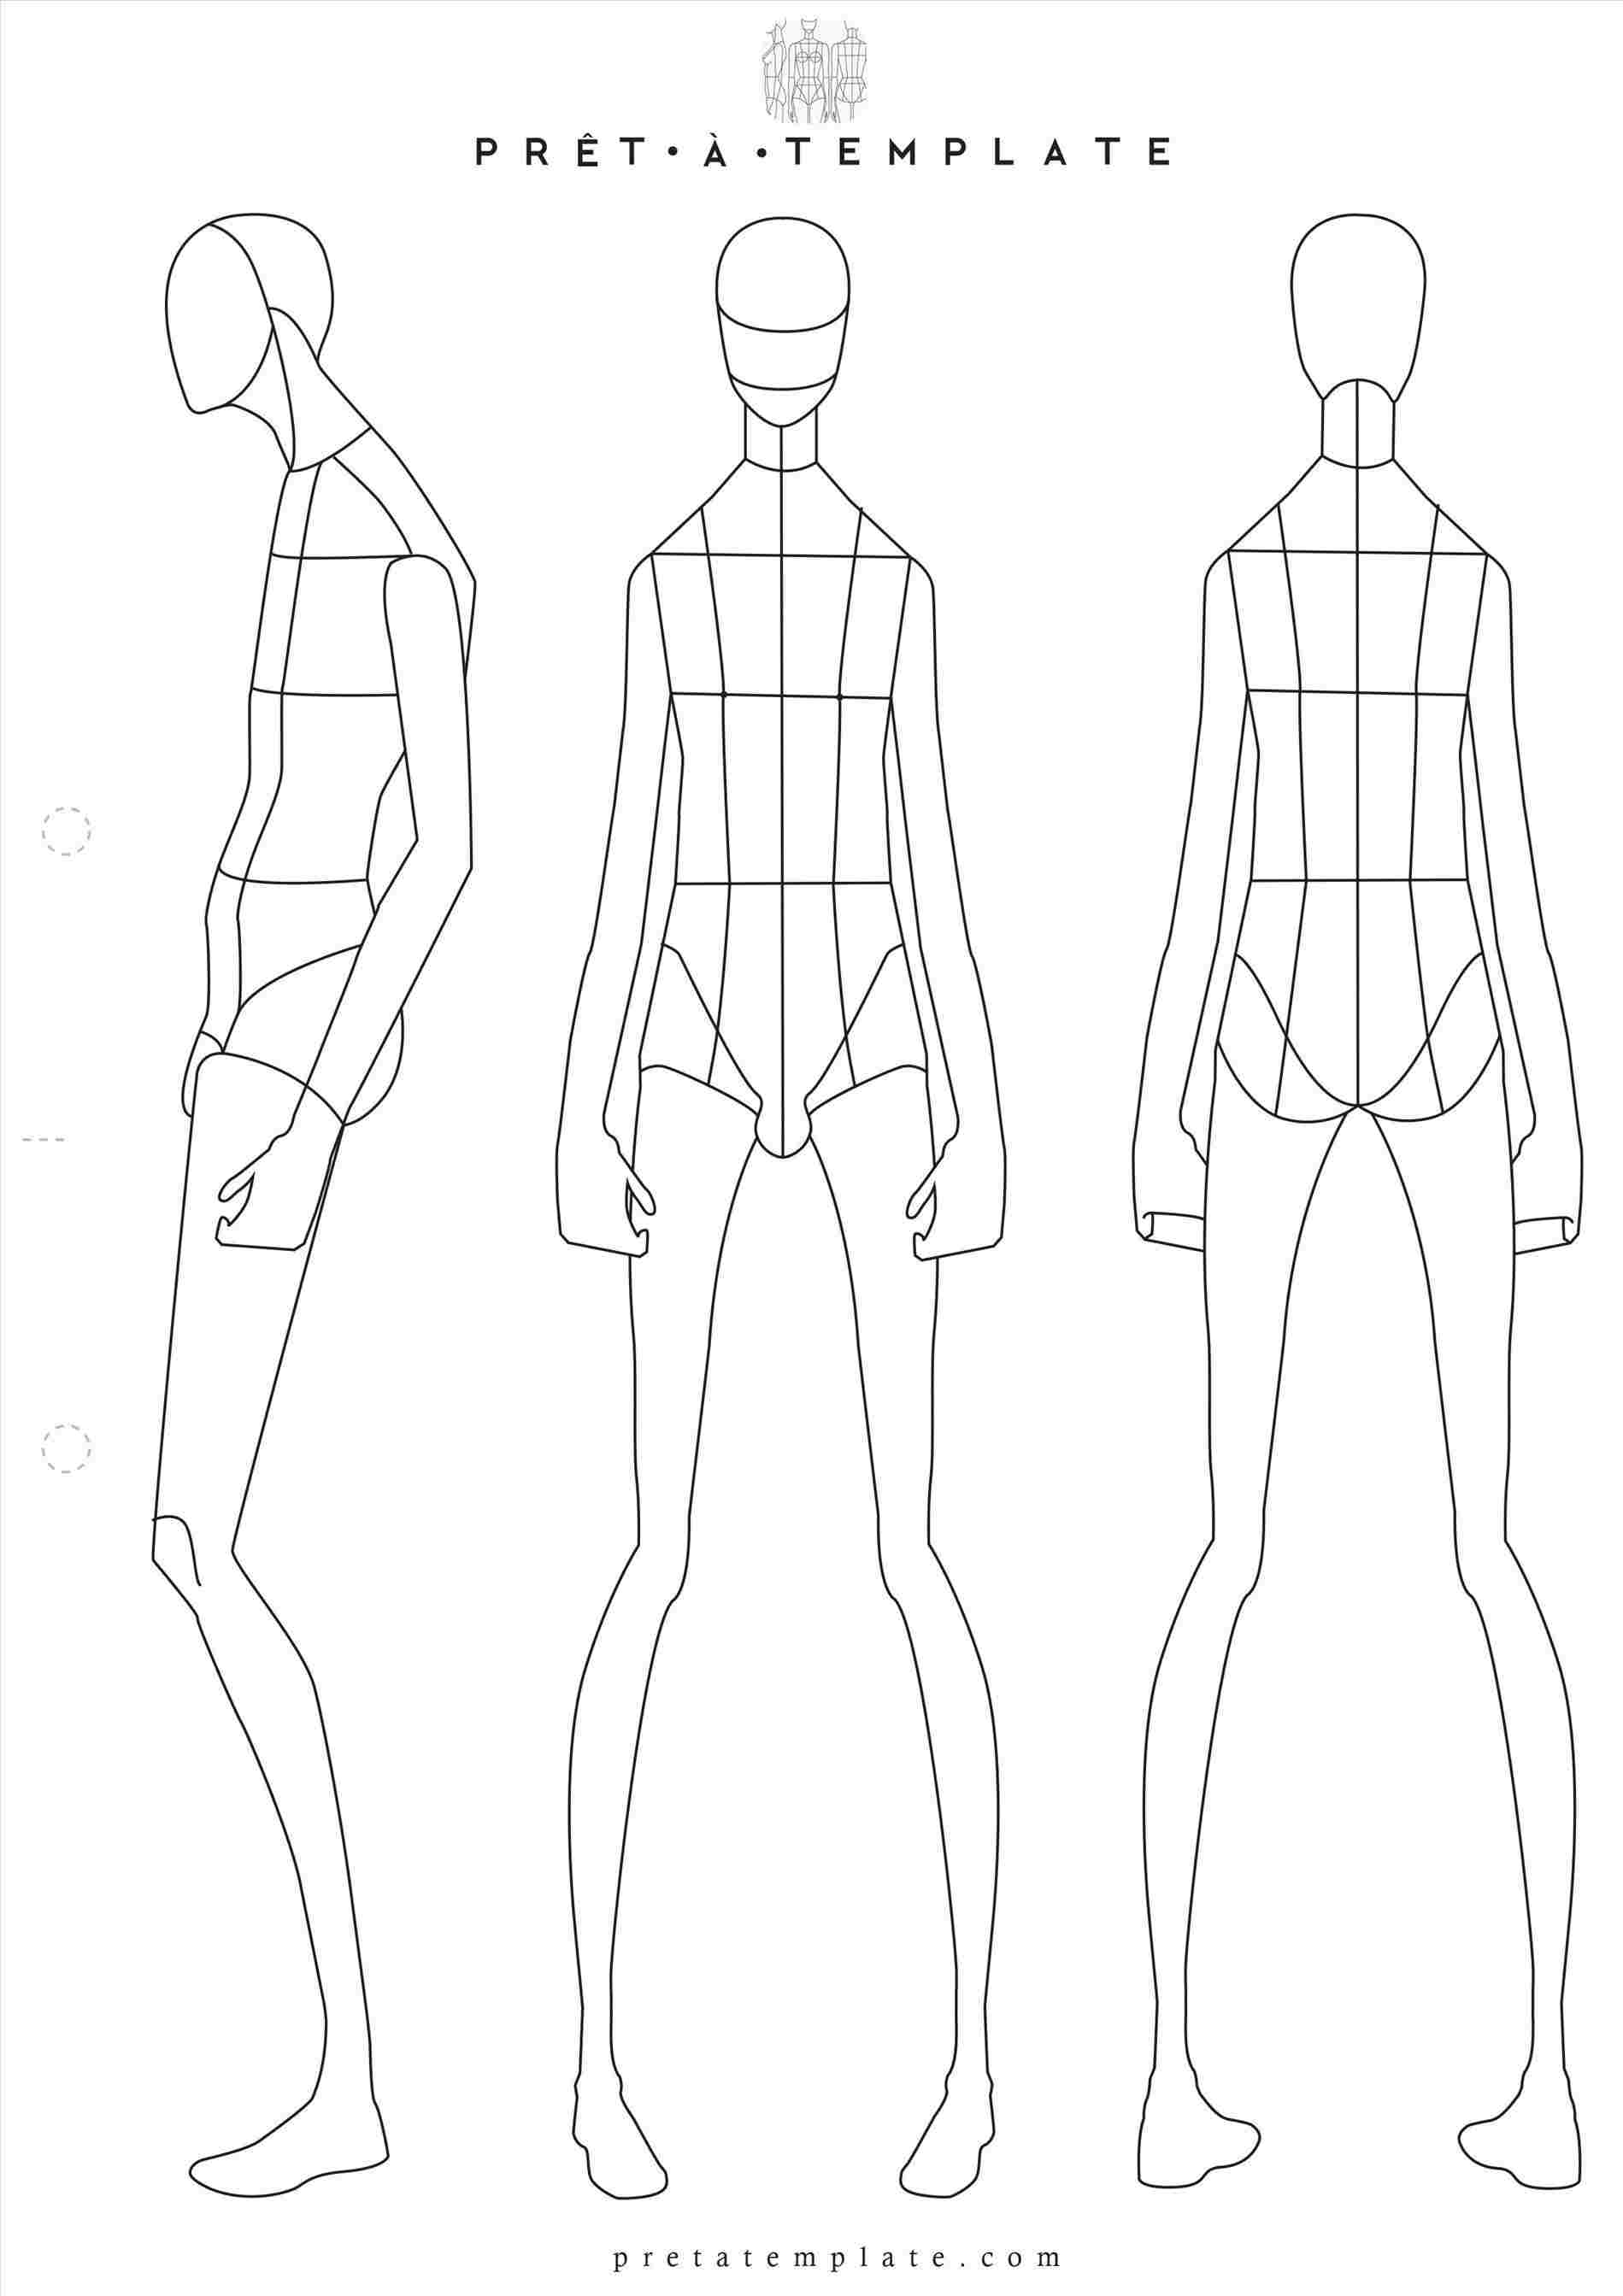 diy-your-own-rhpinterestie-man-Fashion-Sketchbook-With-Templates-male-body-figure-fashion-template-diy-your-own-rhpinterestie-buy-gertieus-new-sketchbook-indispensable-templates-rhamazonin-buy.jpg